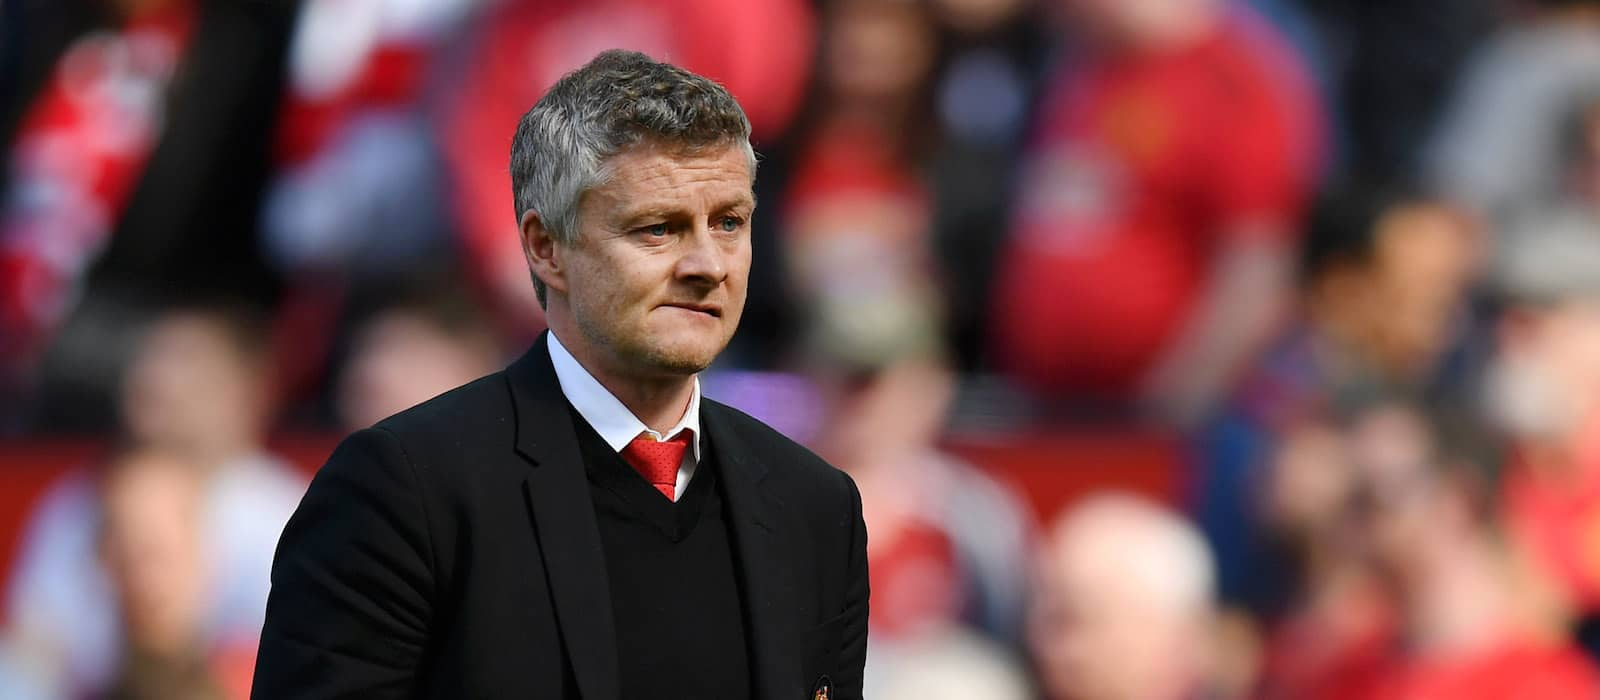 Manchester United won't wait long to sack Ole Gunnar Solskjaer: report